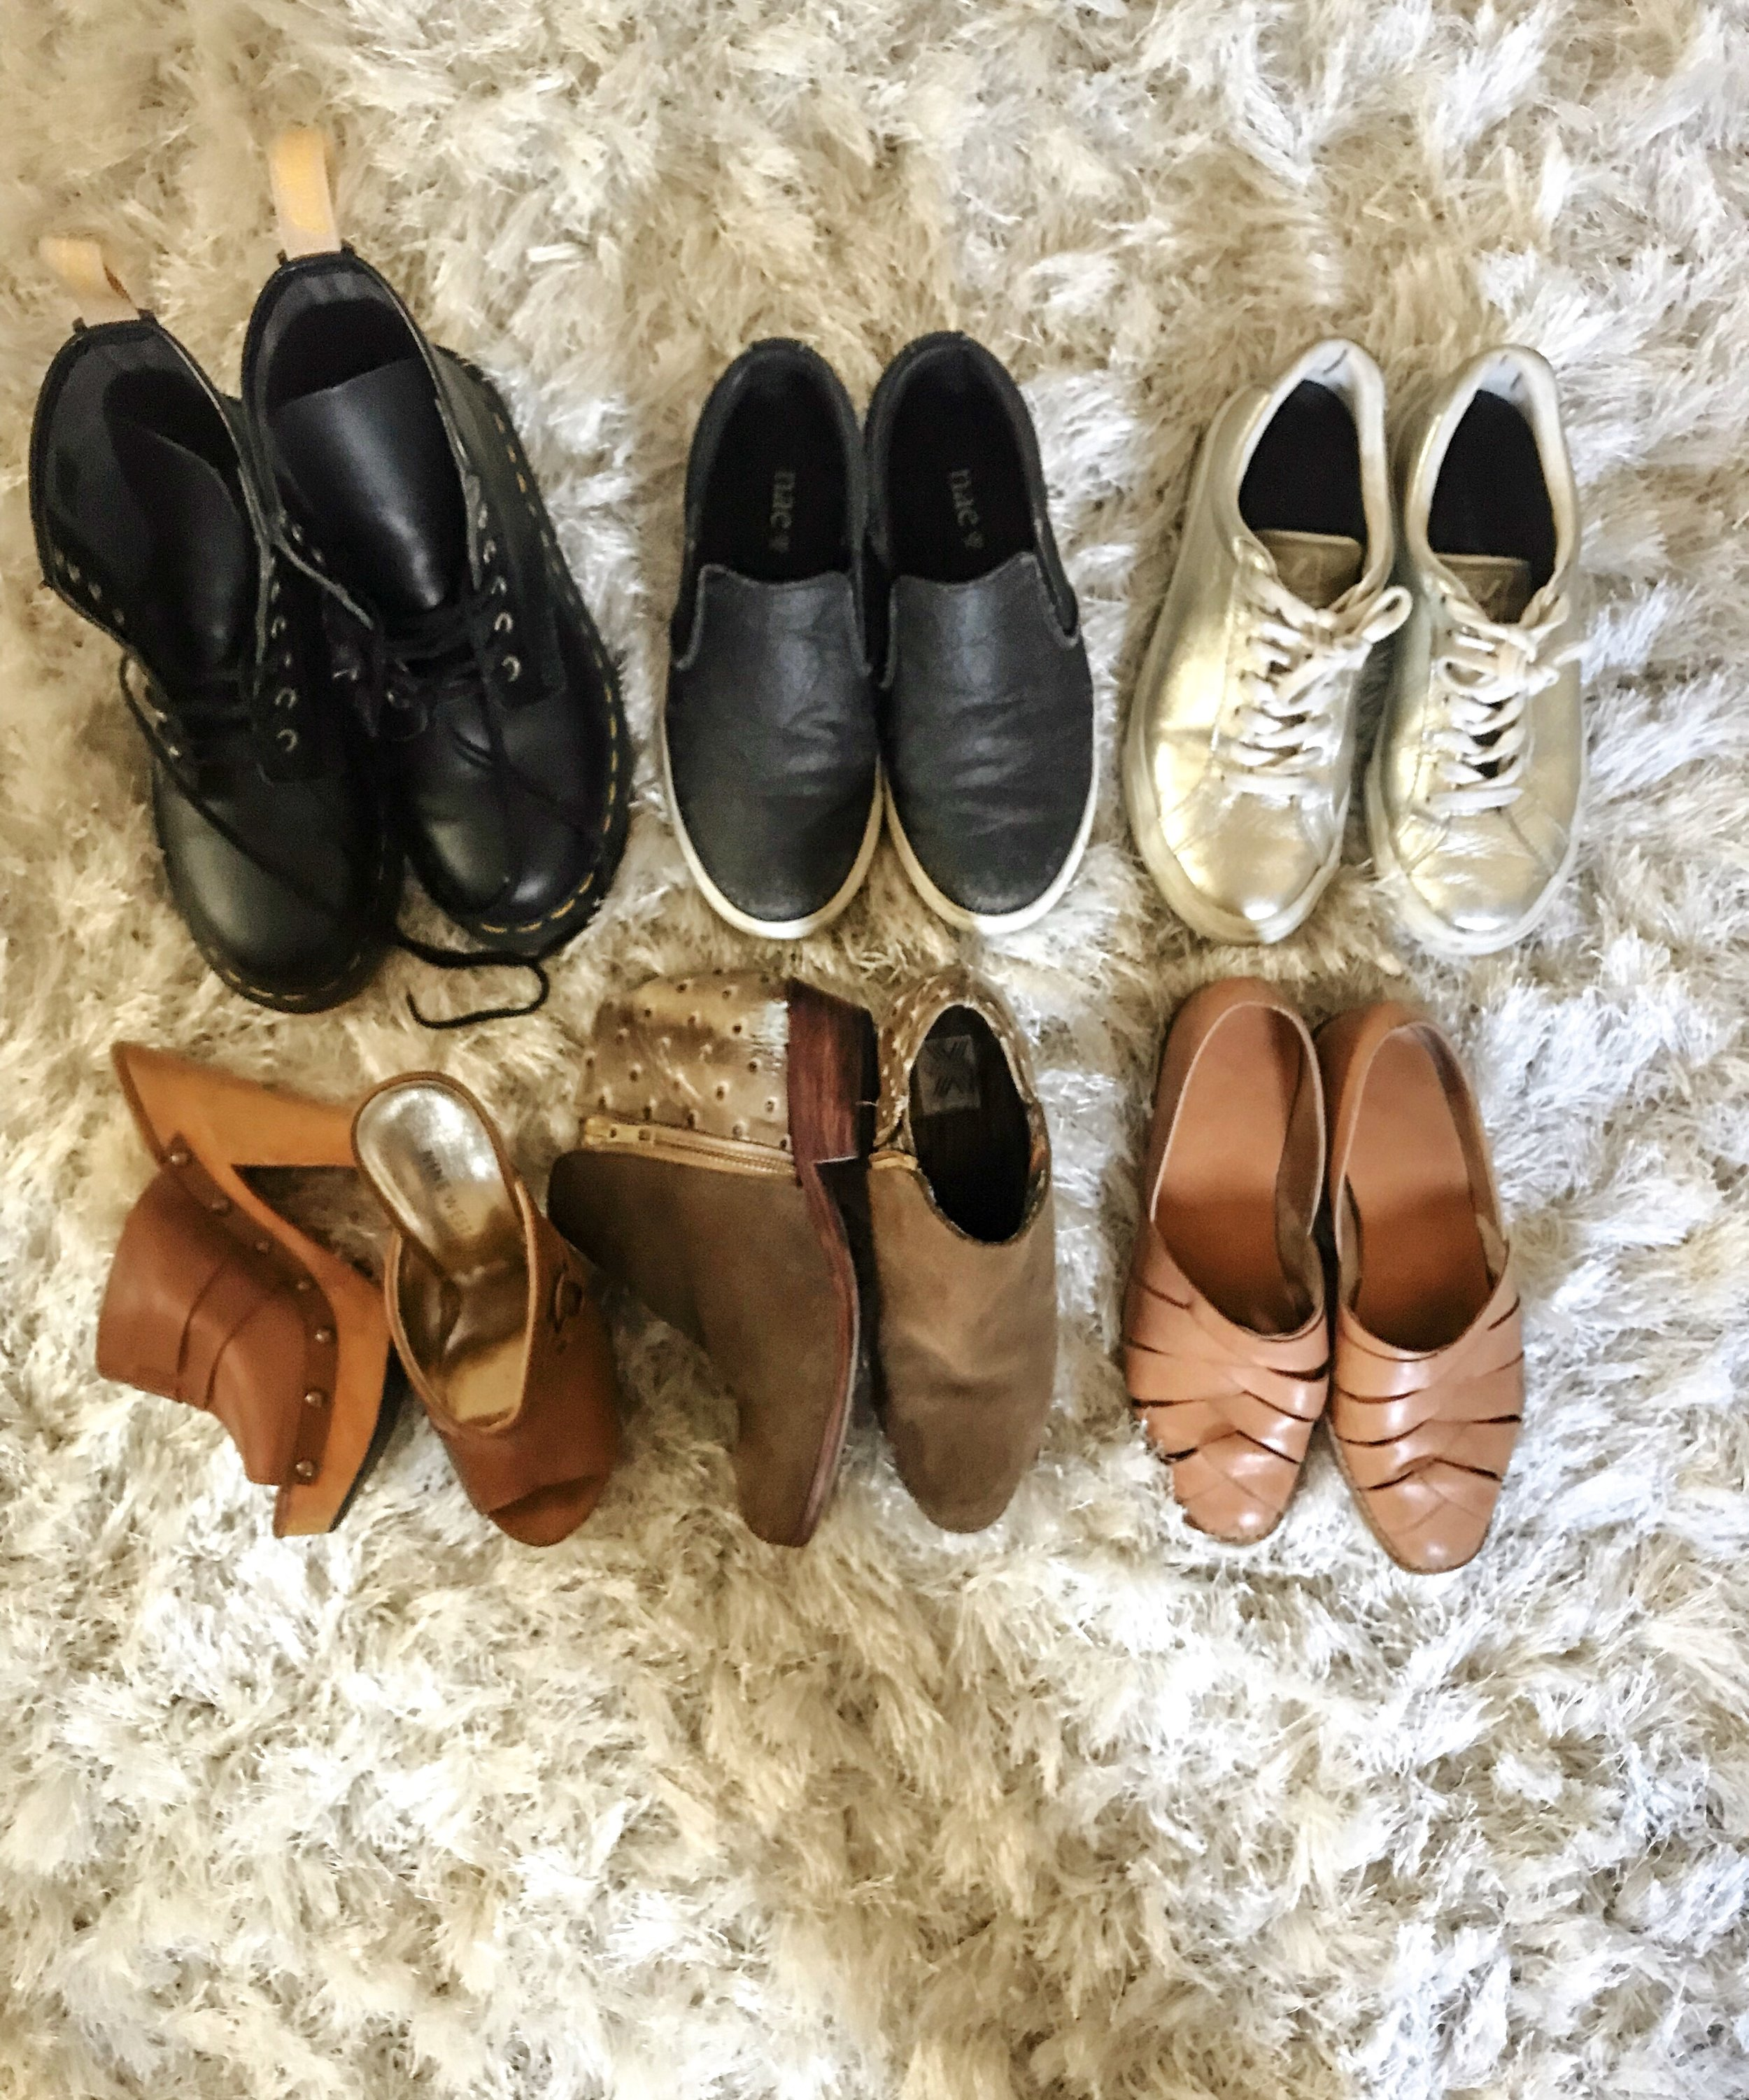 Top from L to R: Vegan Doc Martens,  Nae Vegan ,  Veja   Botton L to R: Second-hand Nine West, Uxibal, Vintage Liz Claiborne